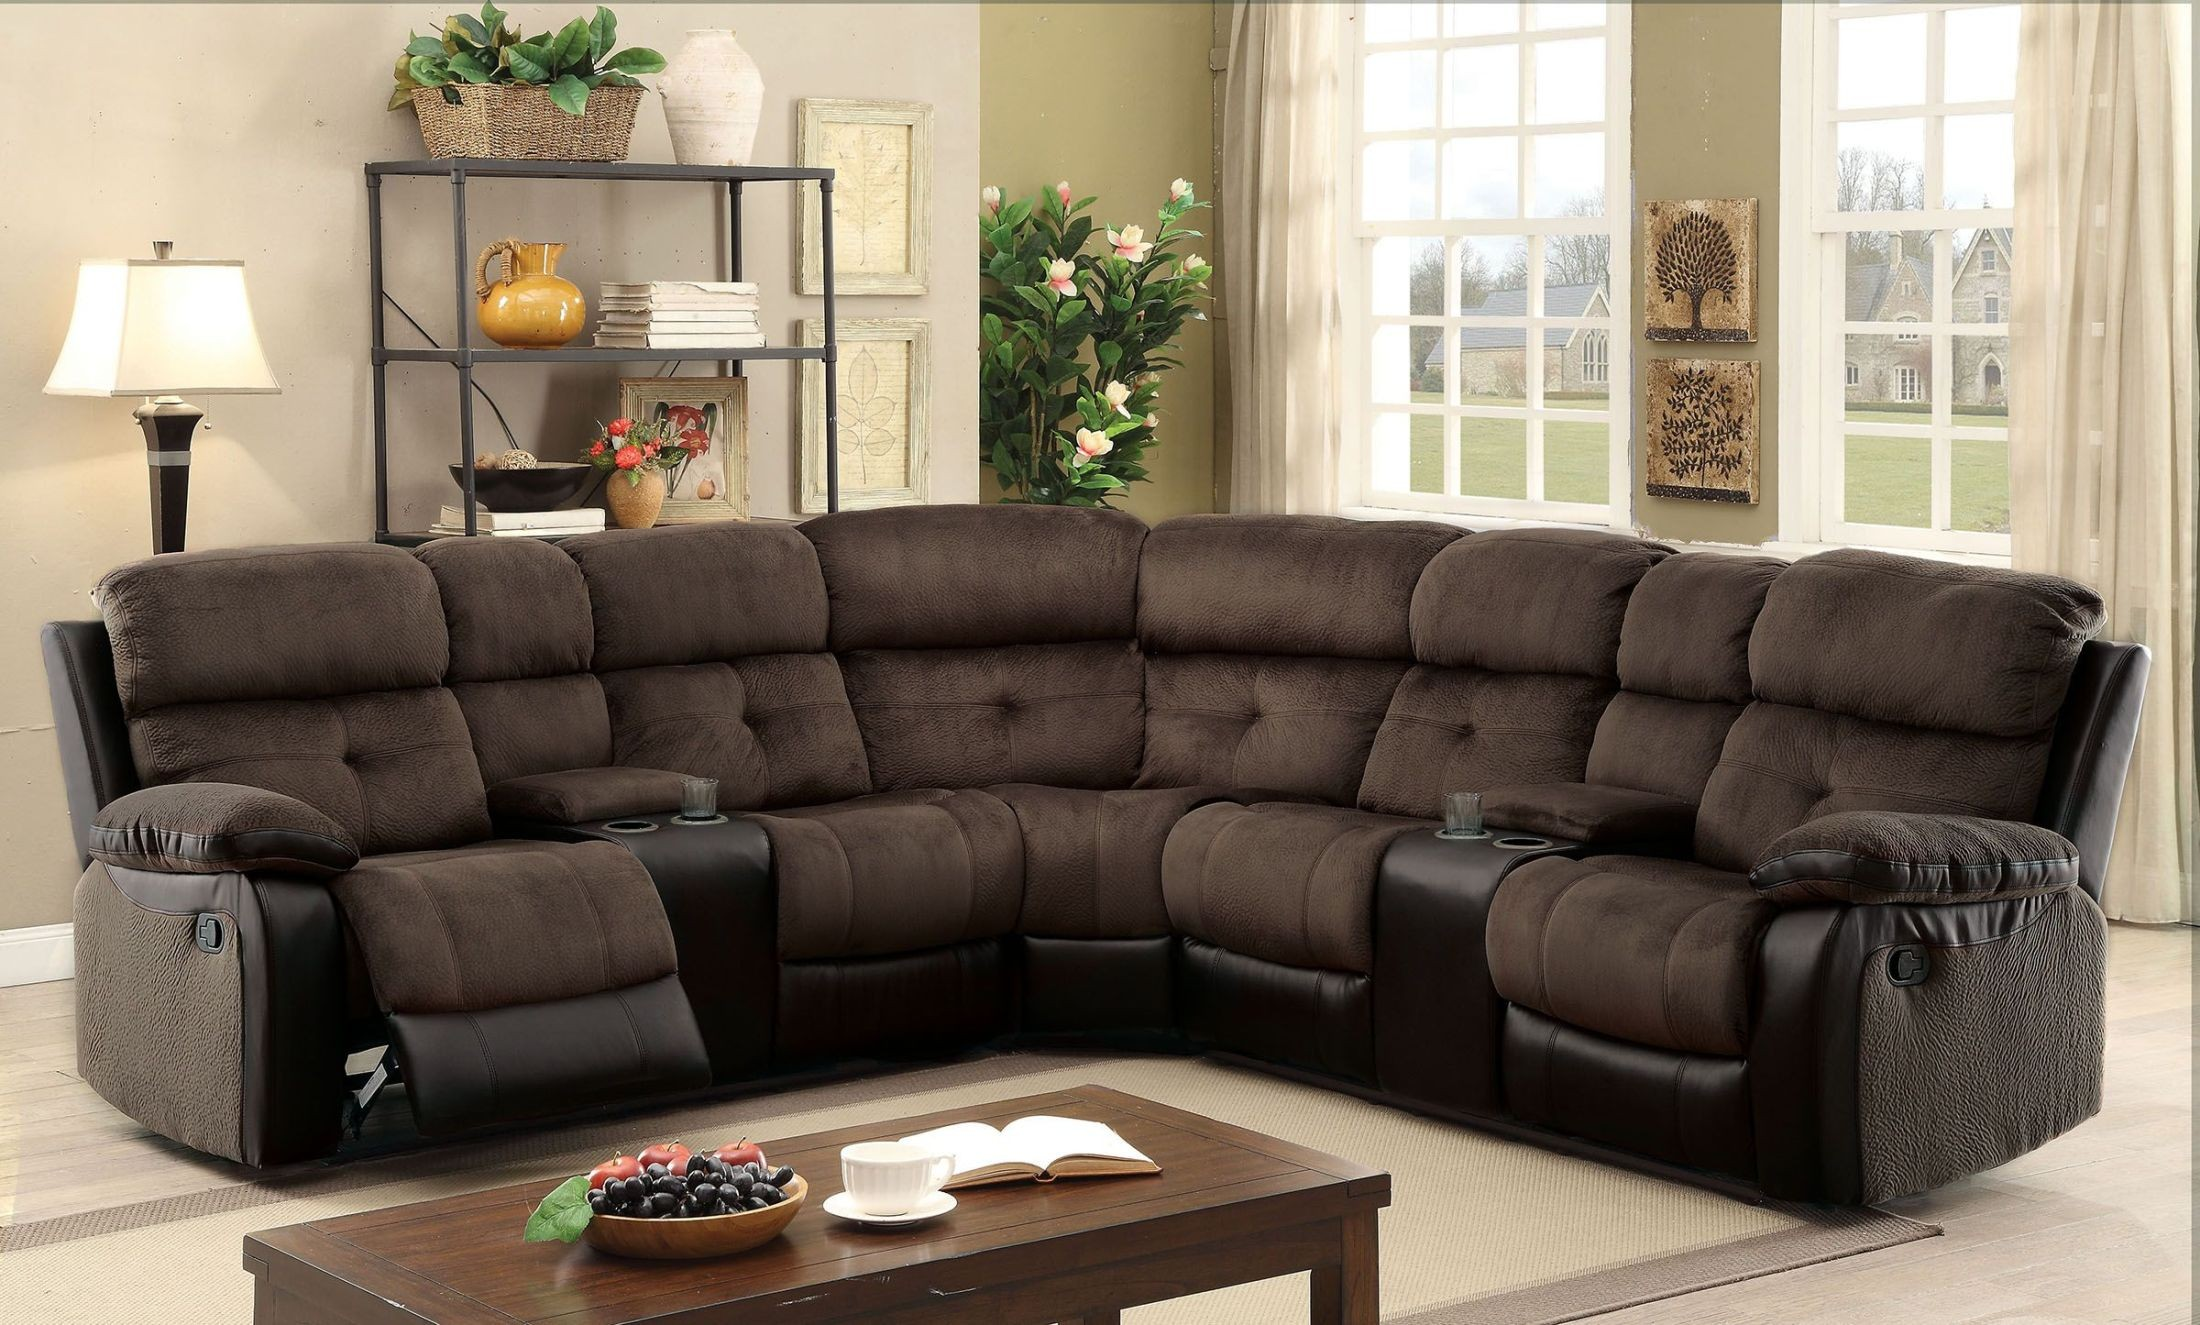 justin ii fabric reclining sectional sofa palliser frame construction hadley espresso from furniture of